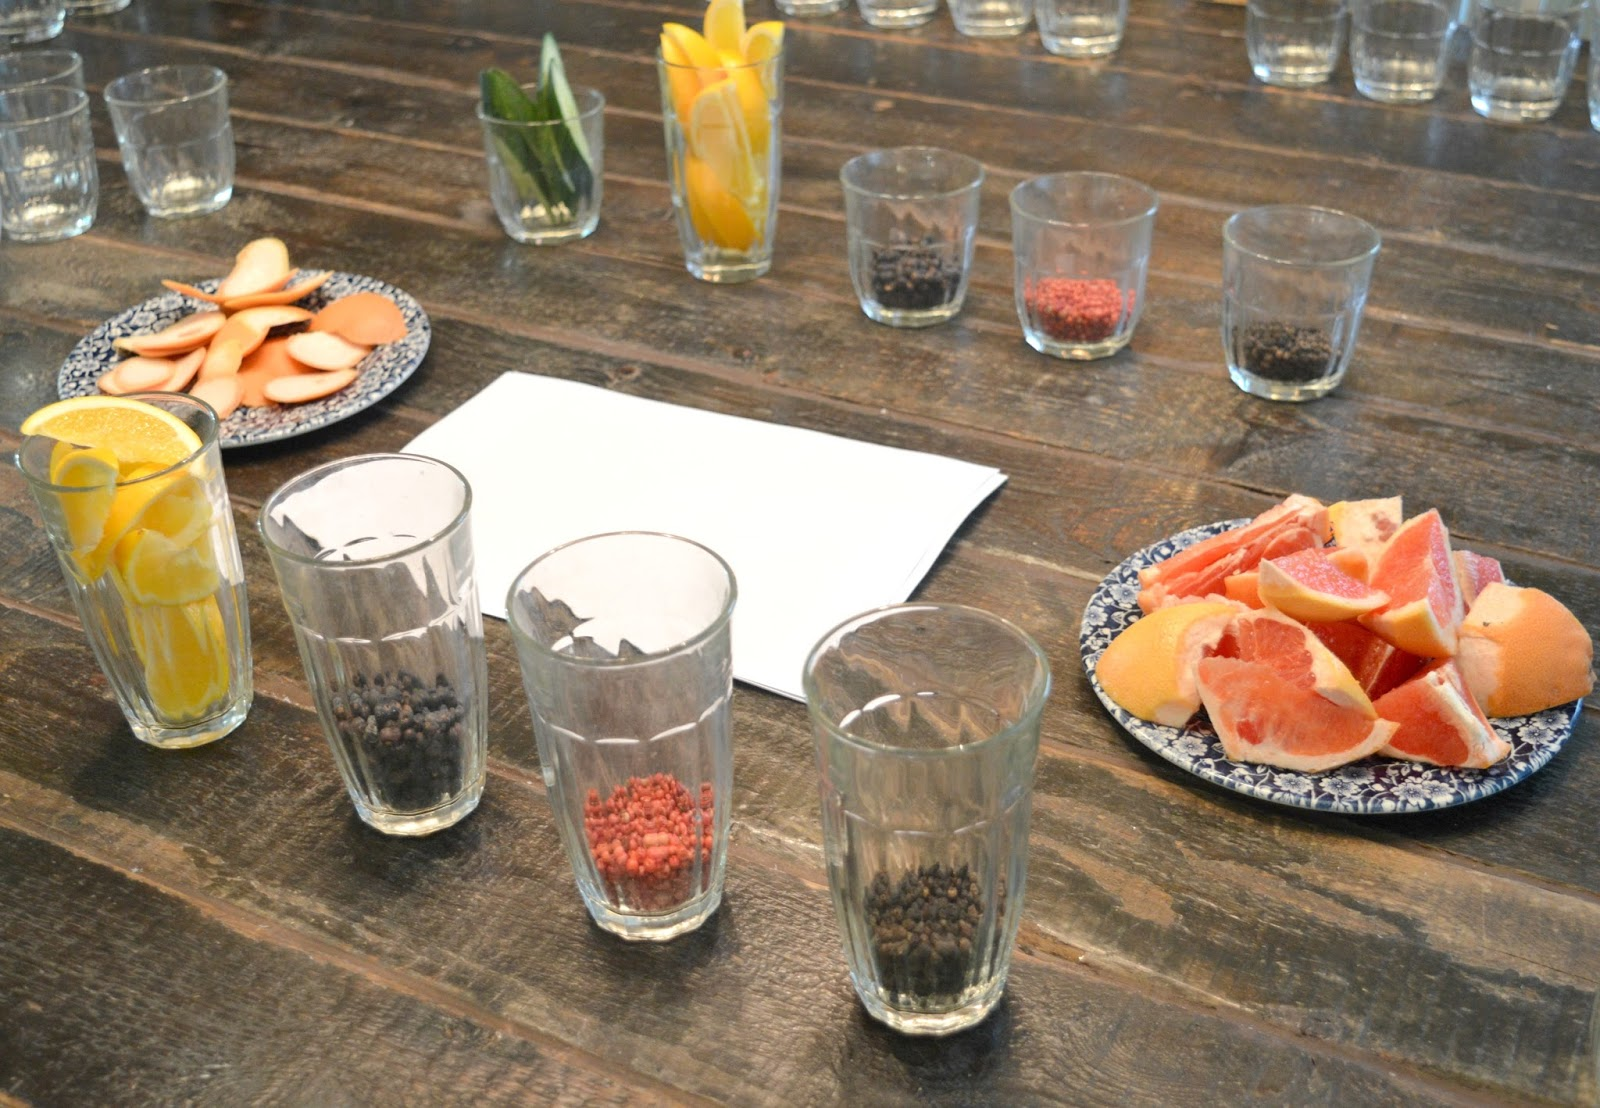 A Gin Masterclass at the Botanist Newcastle - Botanicals